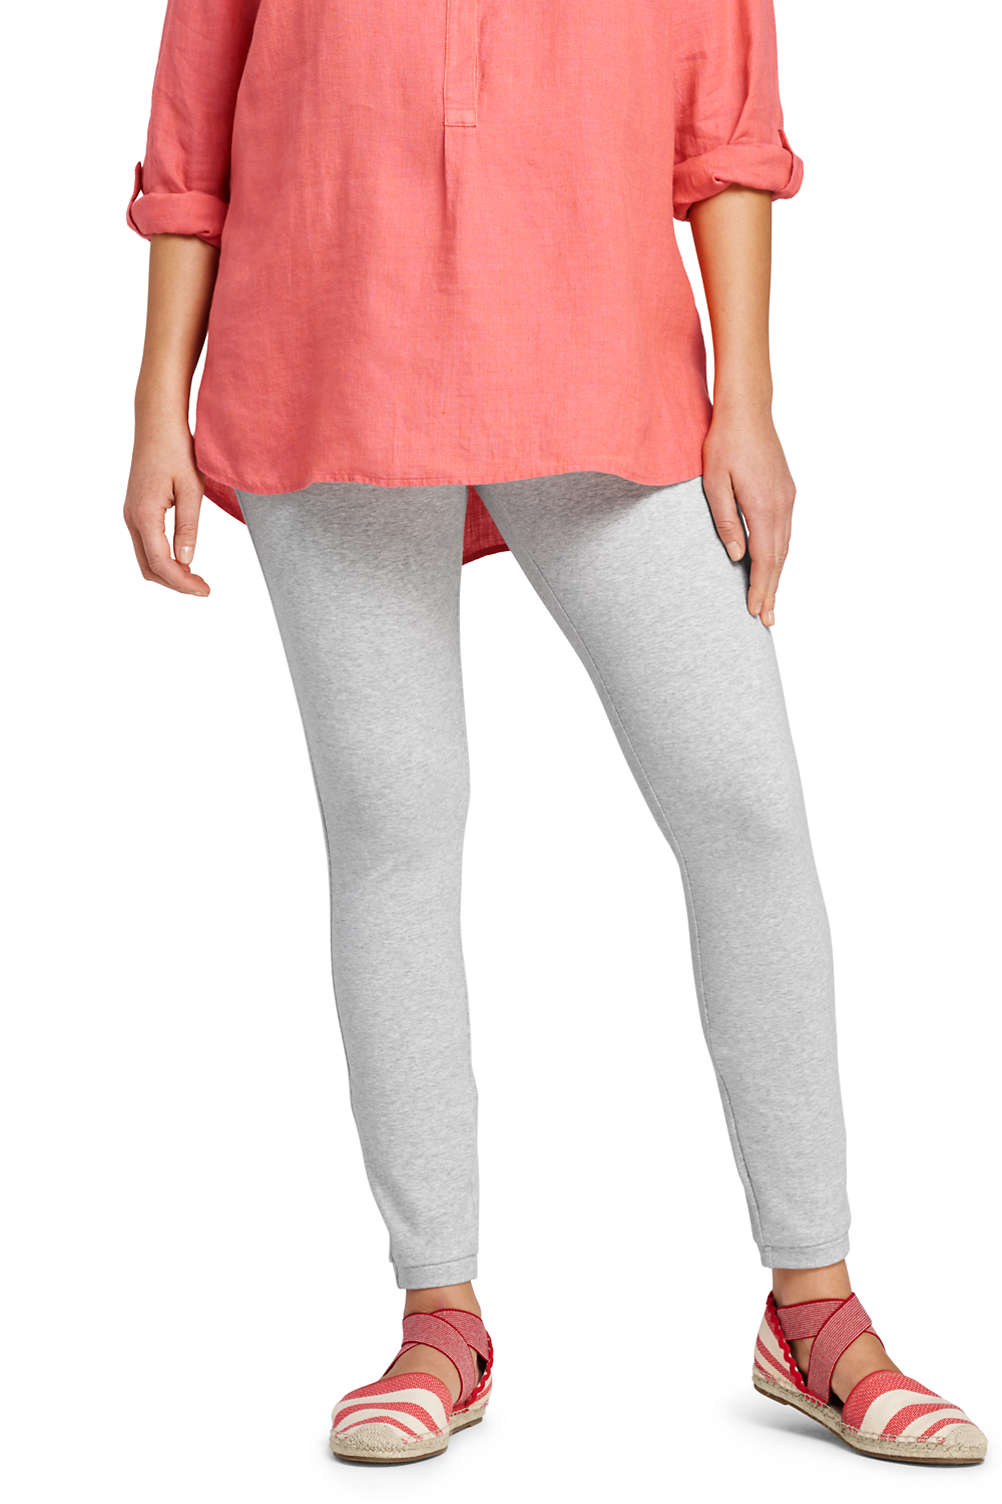 61f6a63dce6c7 Women's Starfish Cotton Spandex Leggings from Lands' End